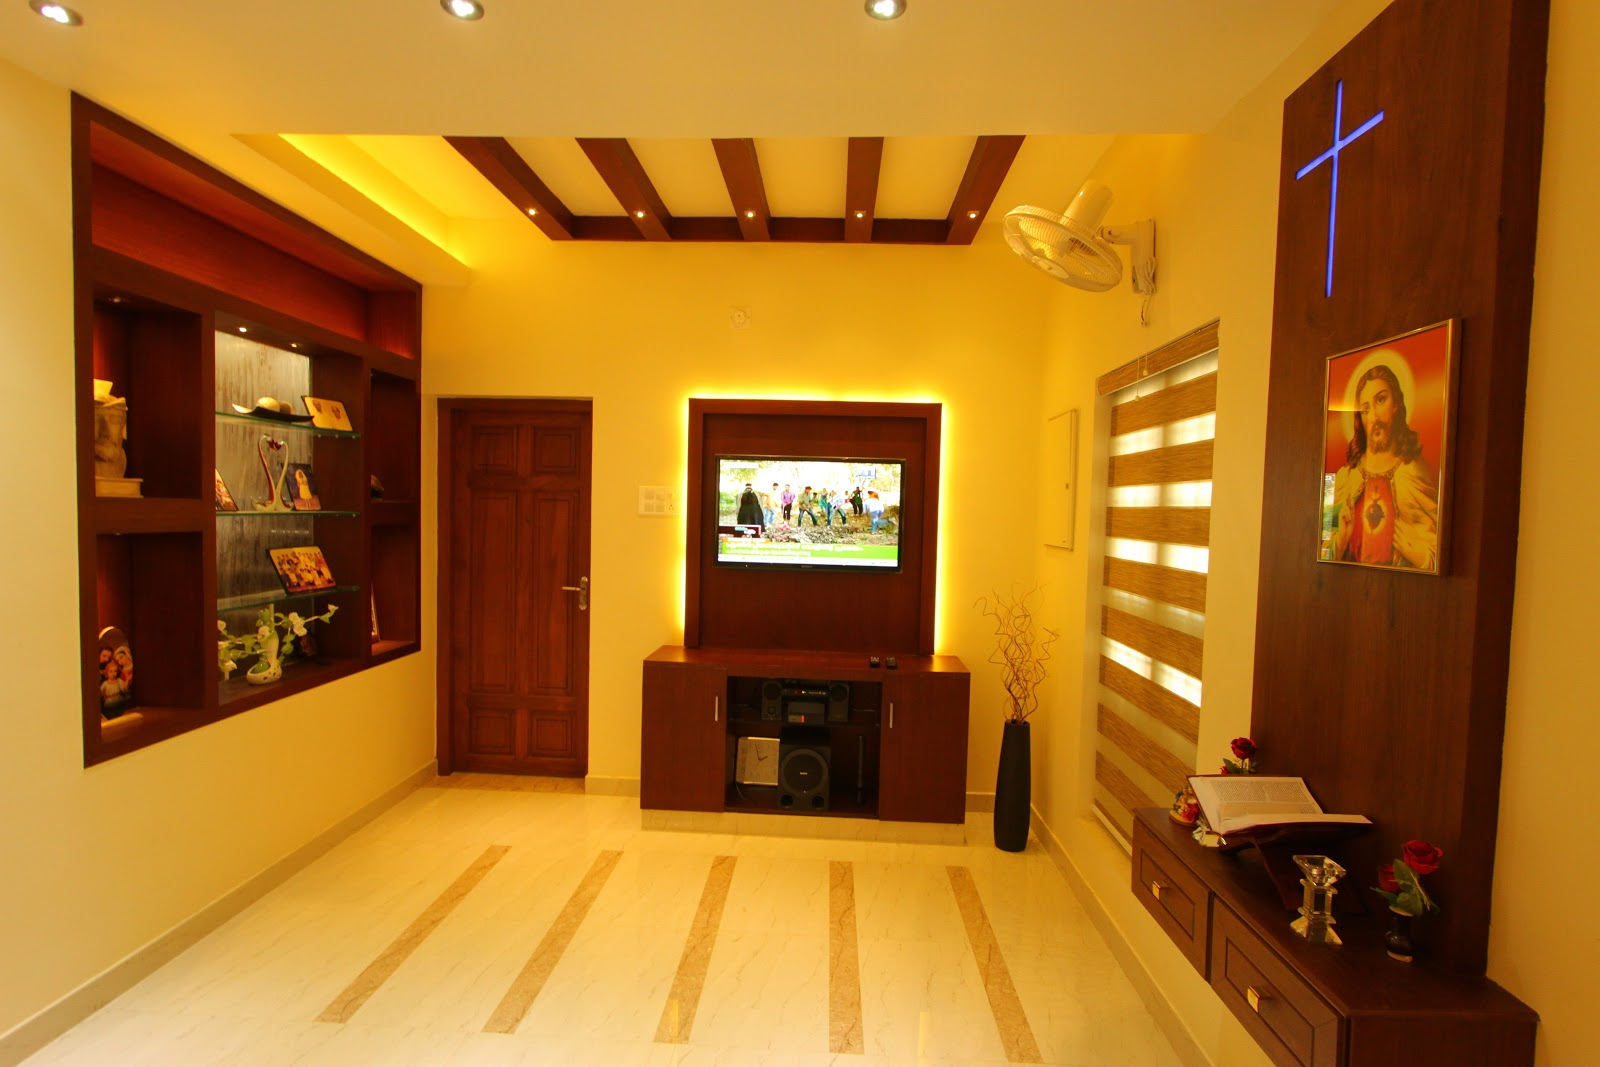 Shilpakala interiors award winning home interior design for House design photos interior design